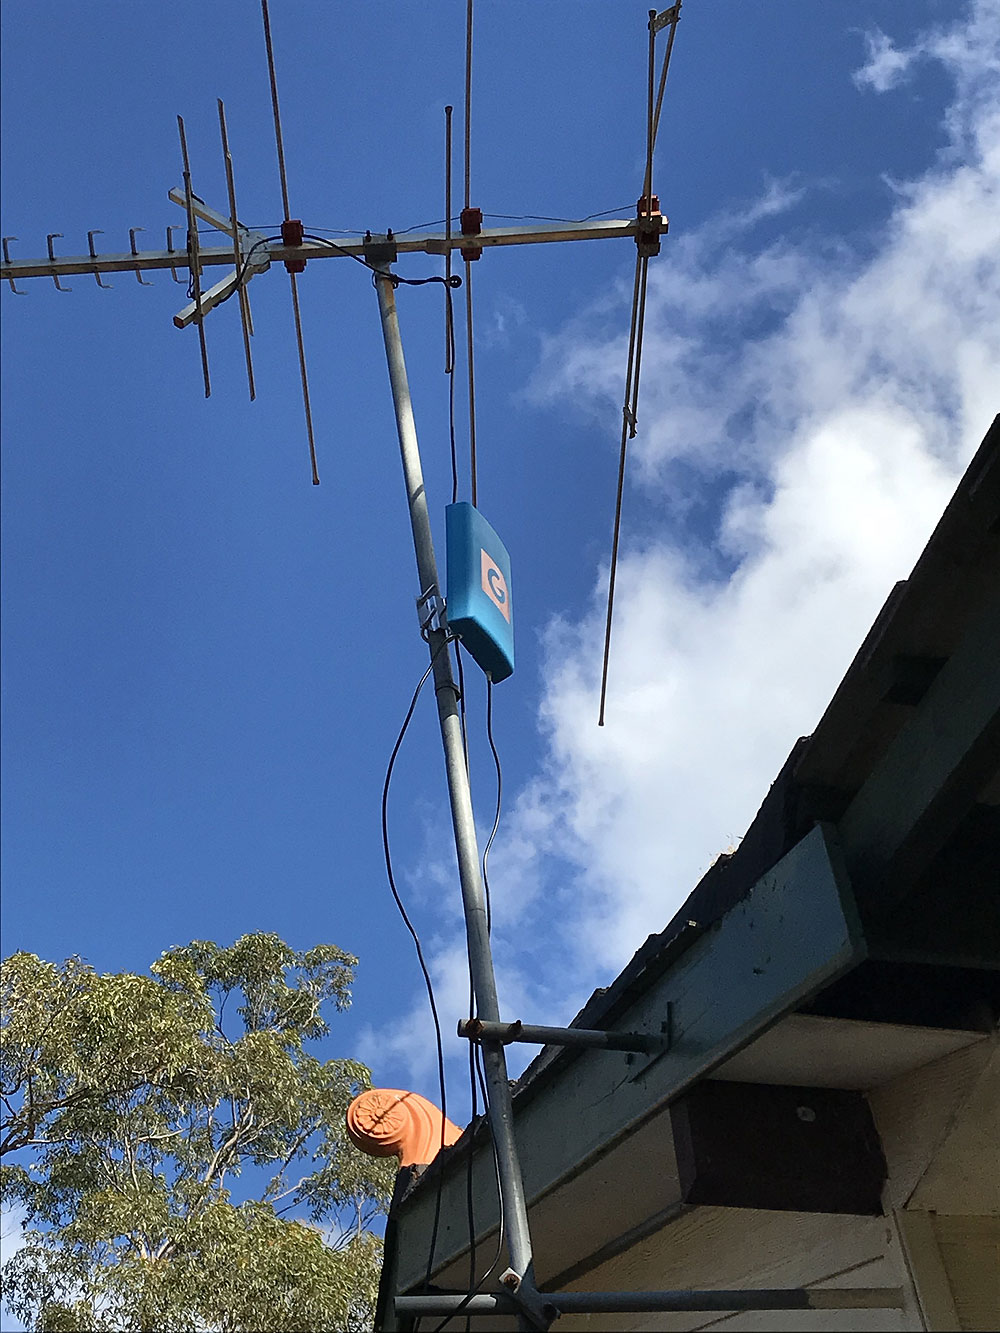 Optus 4G internet signal increase with True BlueG Spotter Antenna in the Blue Mountains NSW